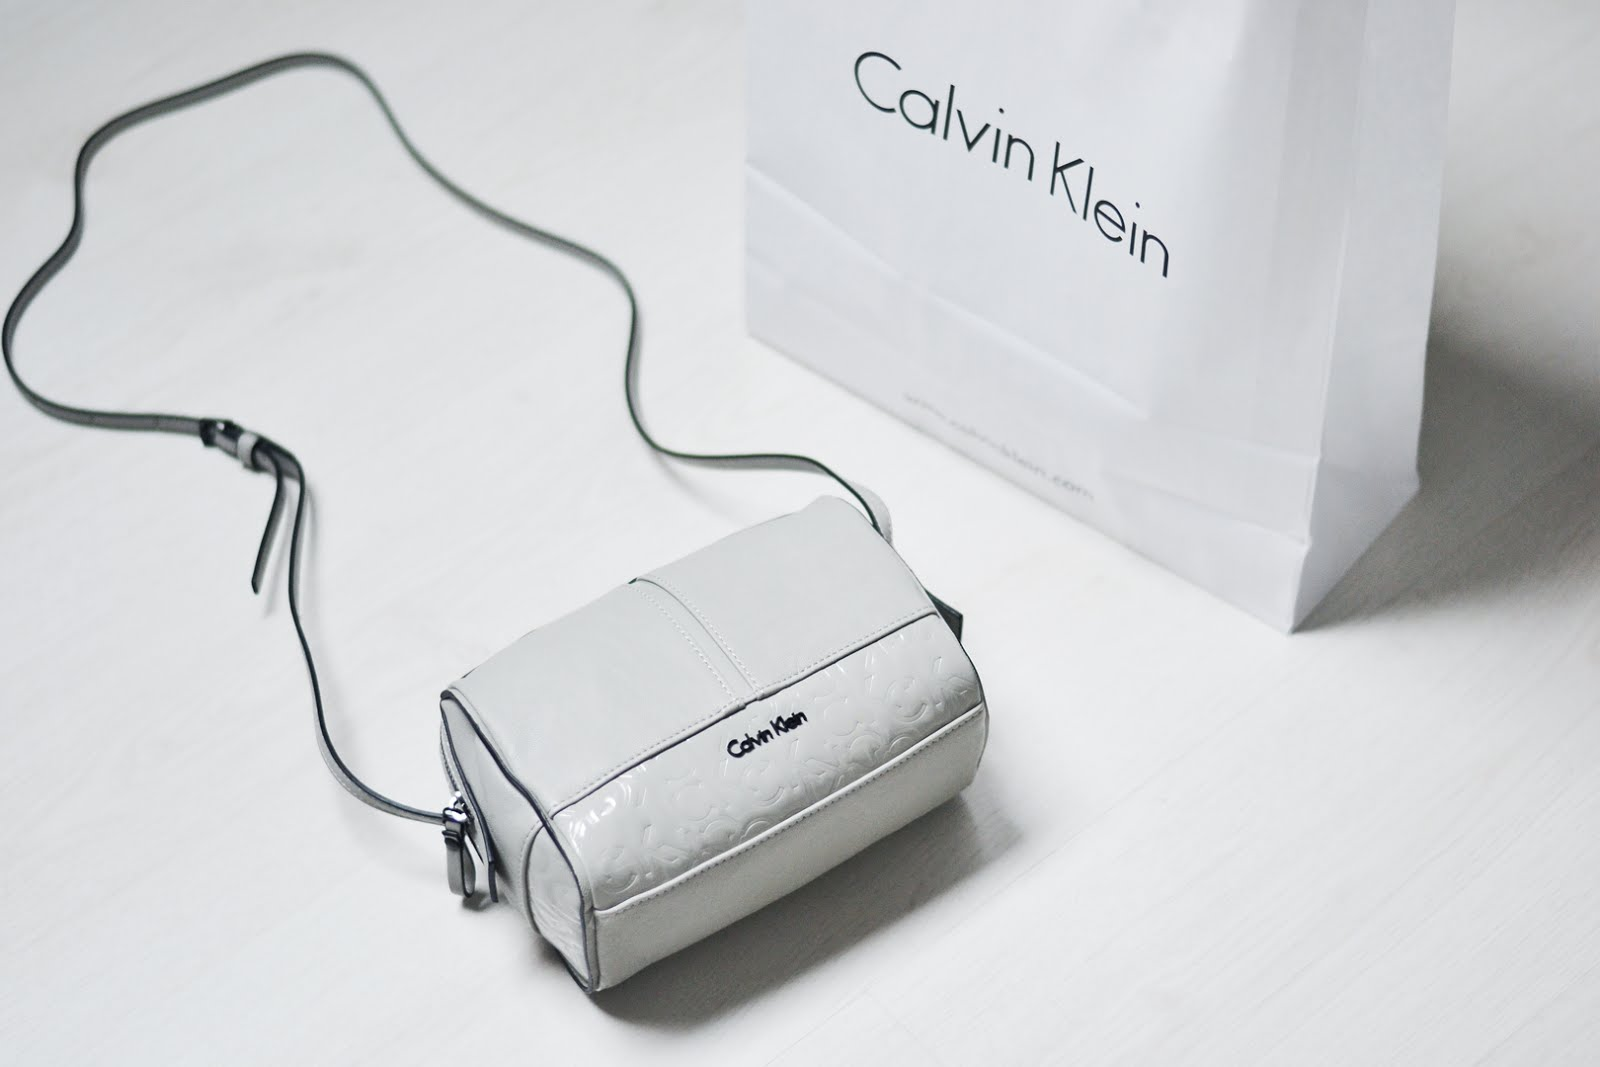 Calvin Klein bag, small, grey, basic, minimalistic, maasmechelen village, sjiek shopping days, belgian blogger